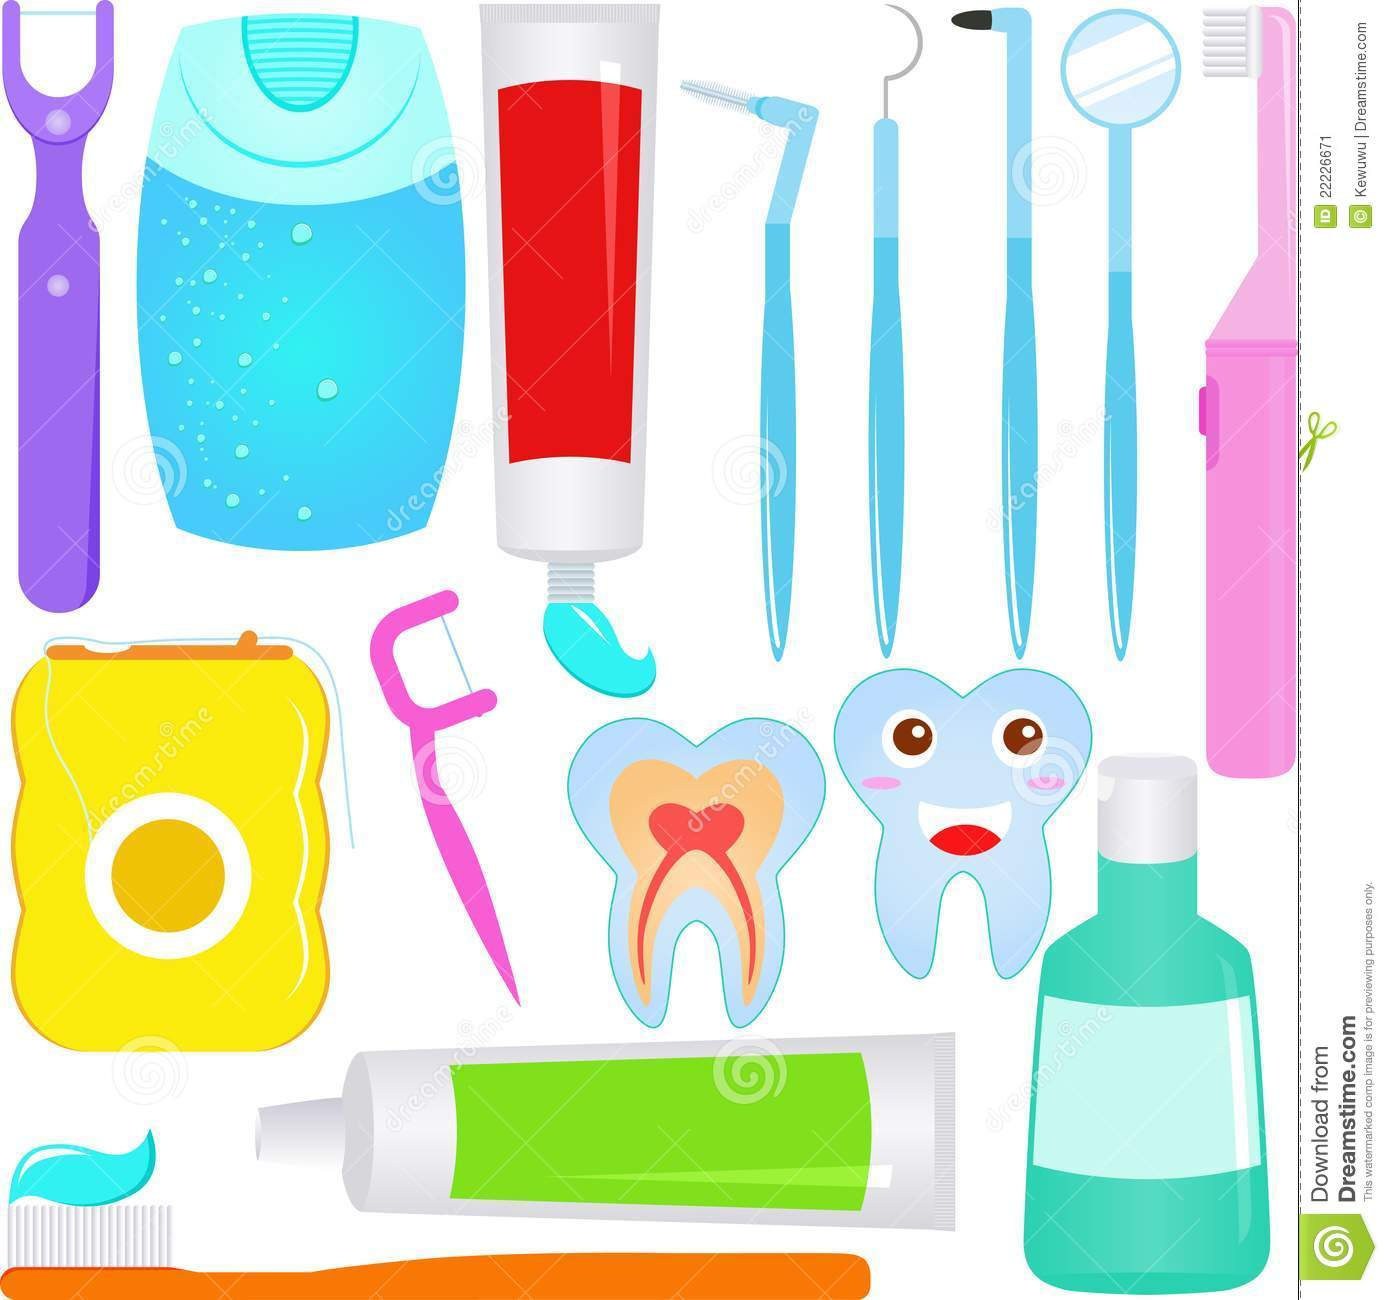 Cute Dental Wallpaper Cute Vector Dental Care Tooth Dentist Icons Stock